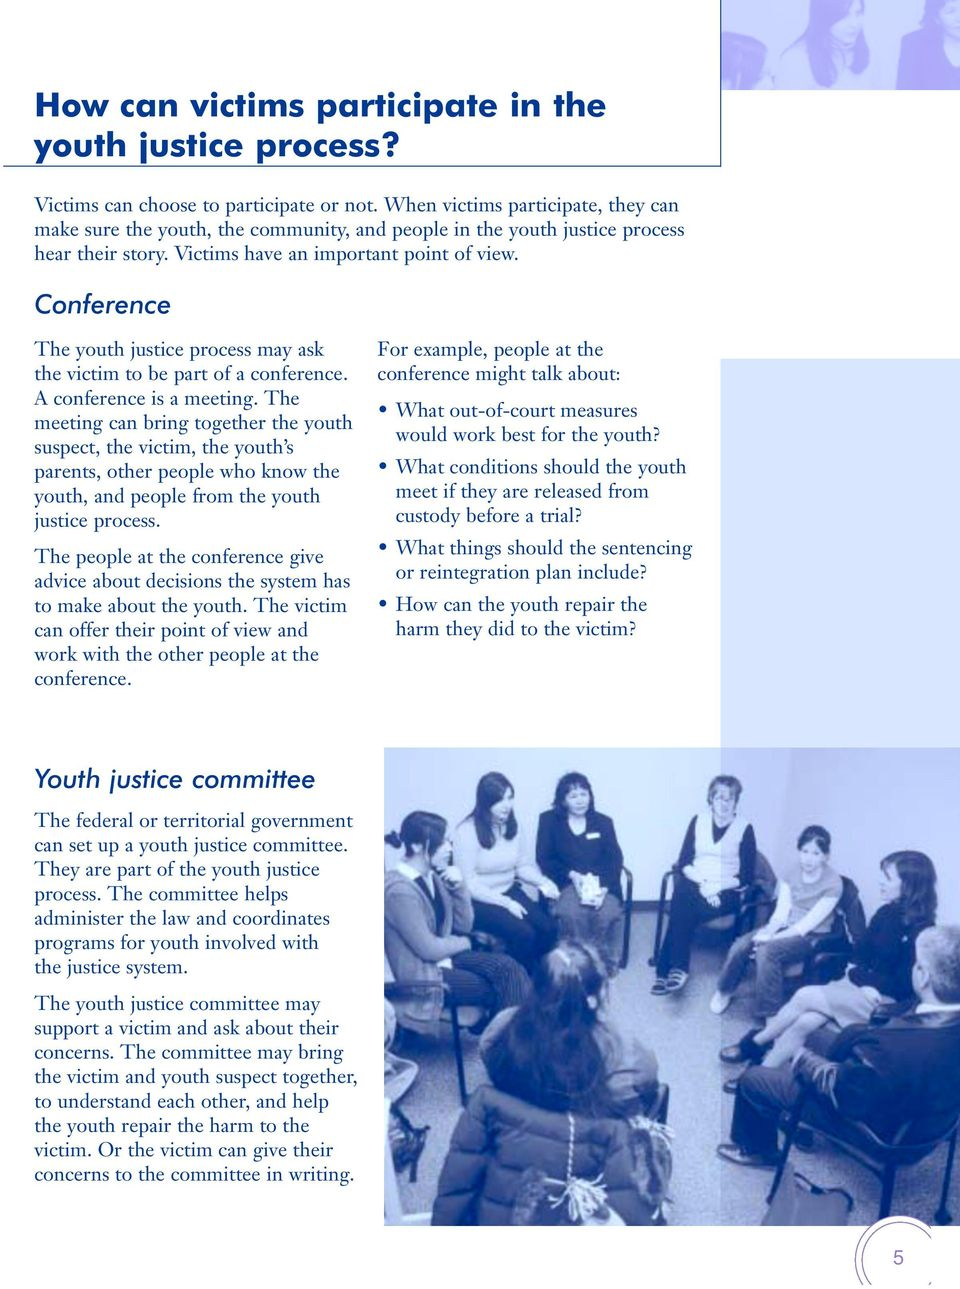 Conference The youth justice process may ask the victim to be part of a conference. A conference is a meeting.